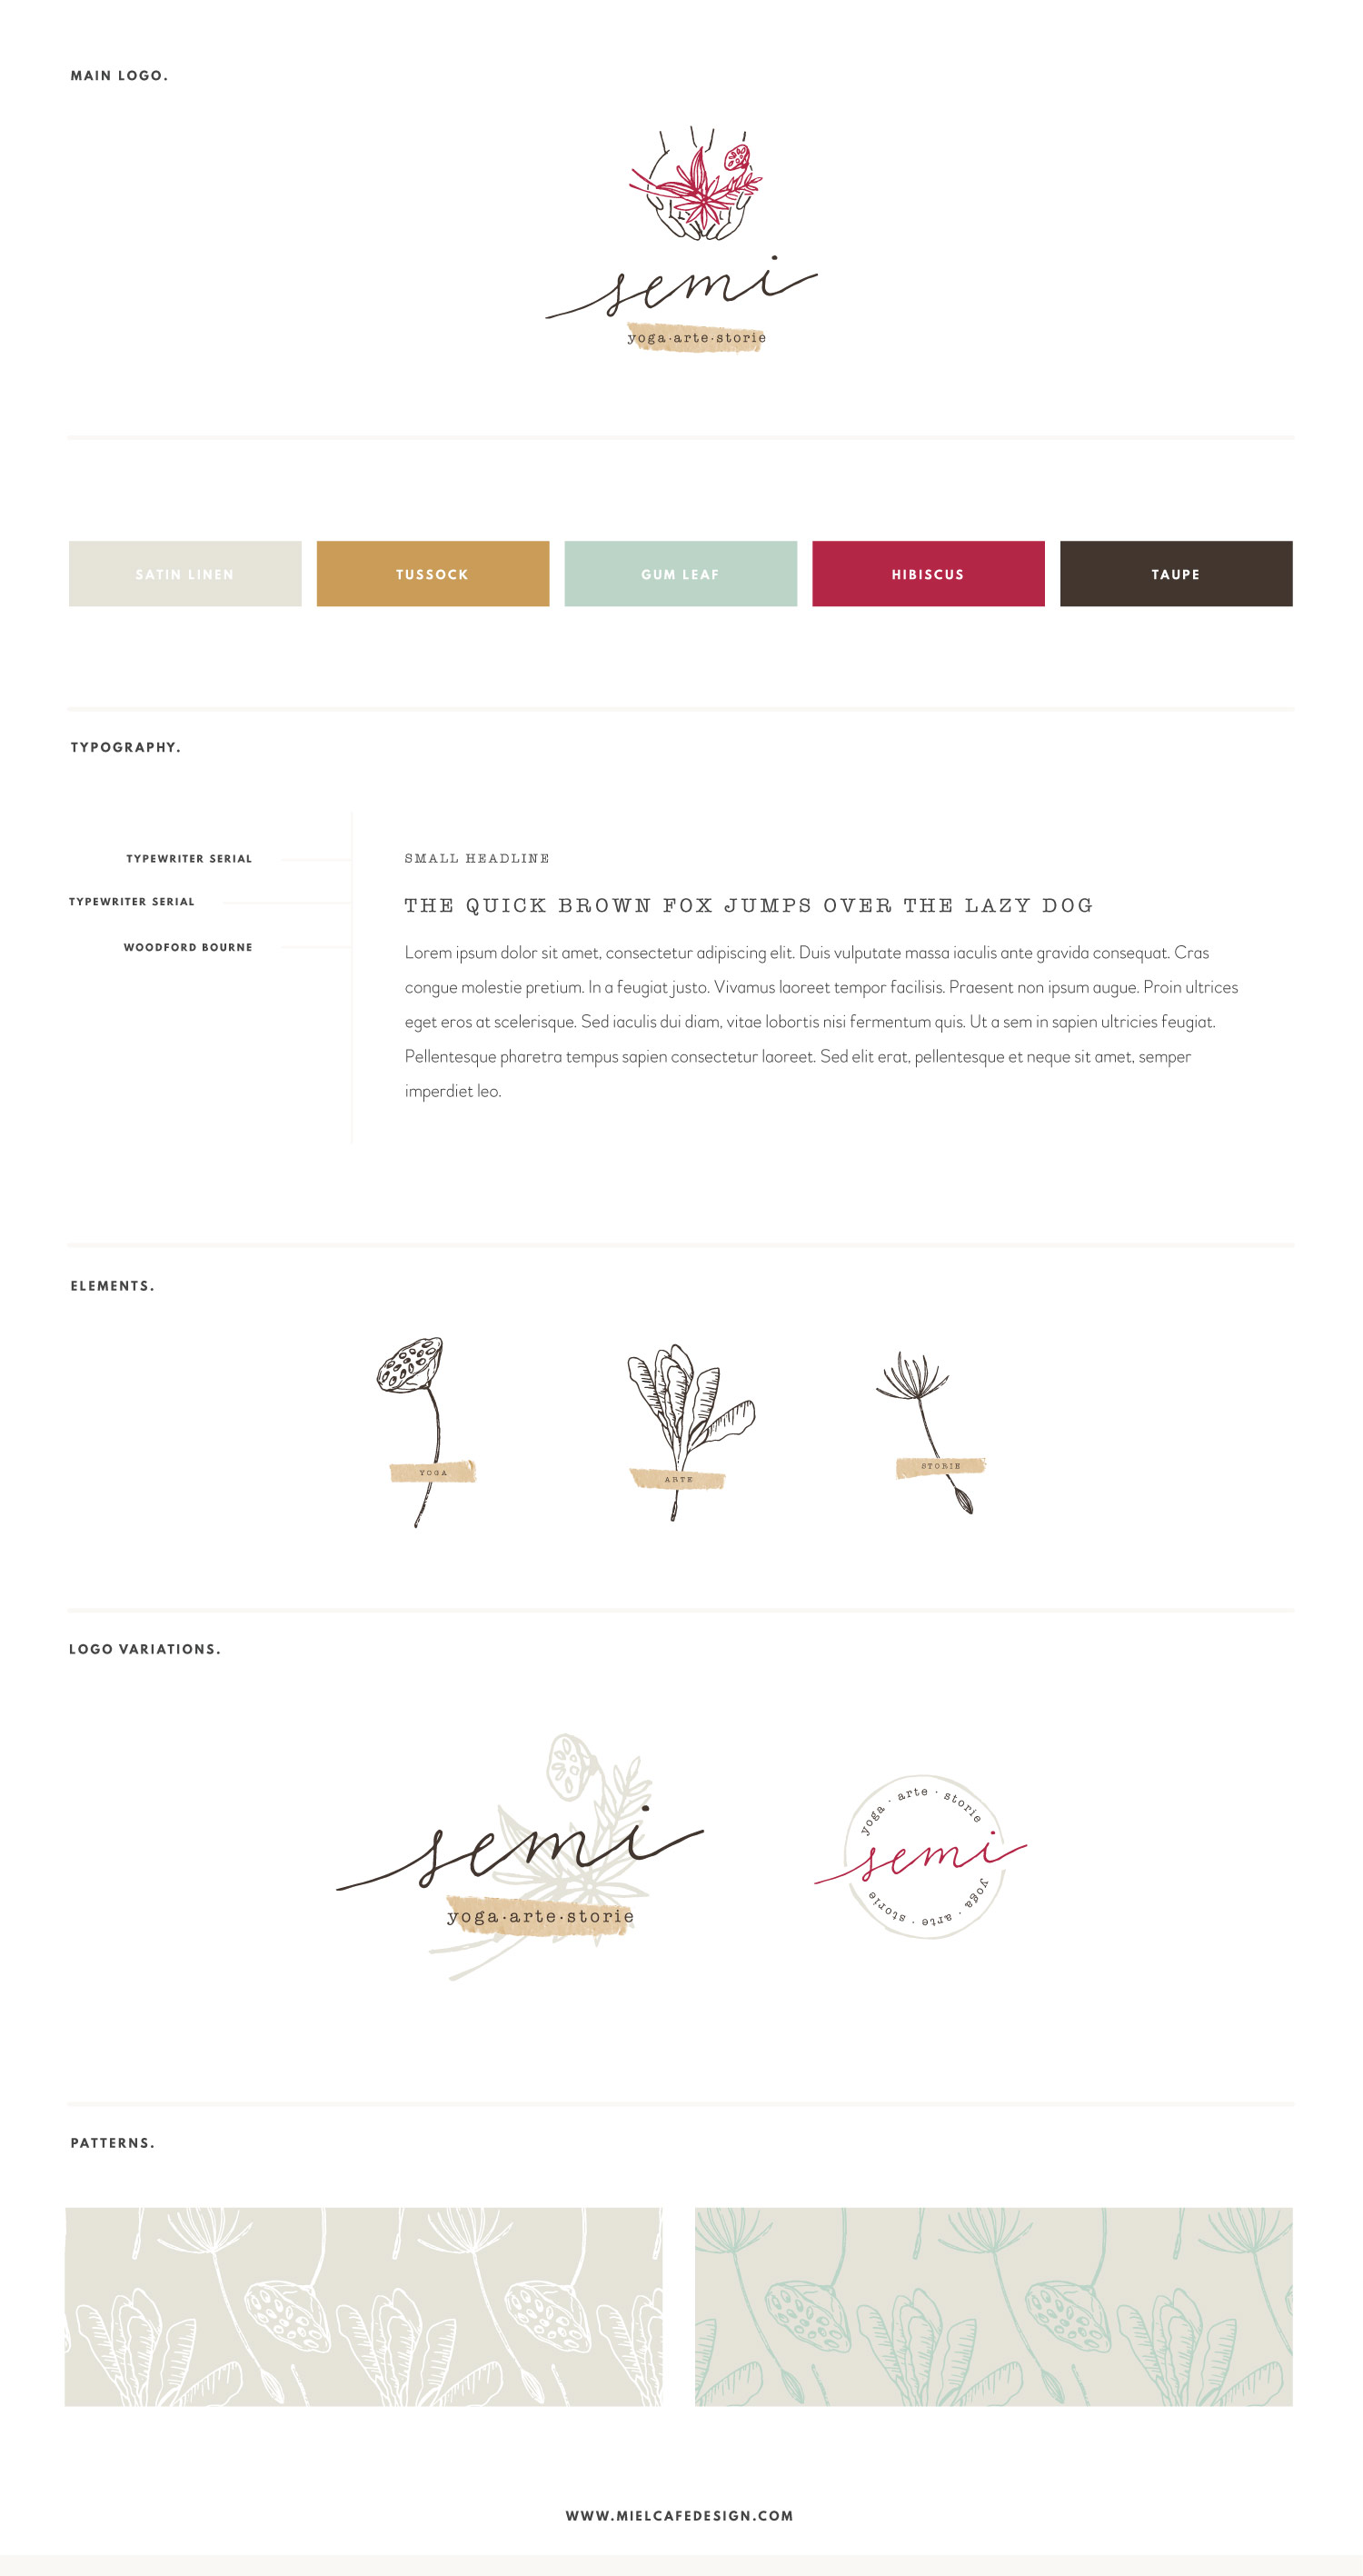 Miel Café Design Portfolio: botanical brand board for SEMI Yoga, Arte, Storie